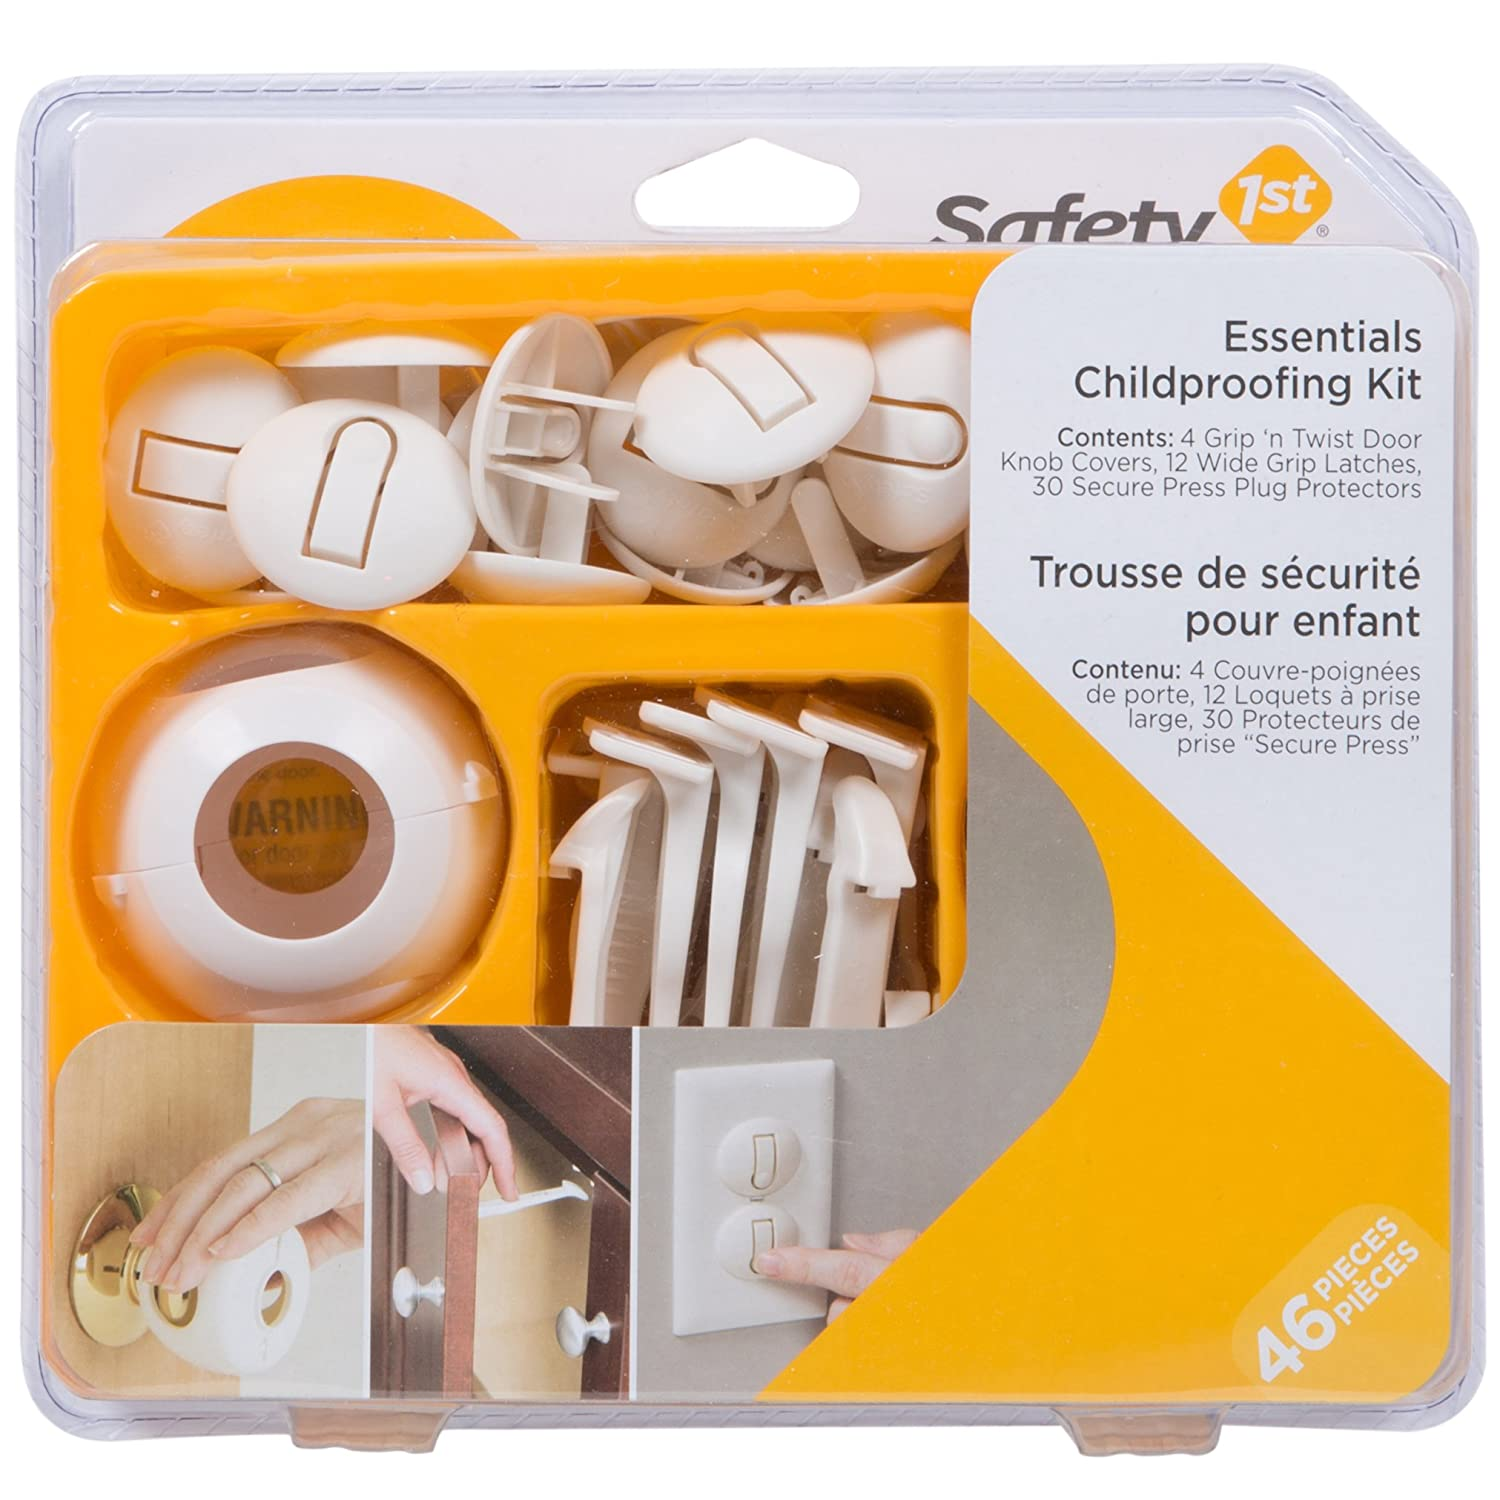 Safety 1st 00HS145 Essentials Child Proofing Kit, 46-Piece